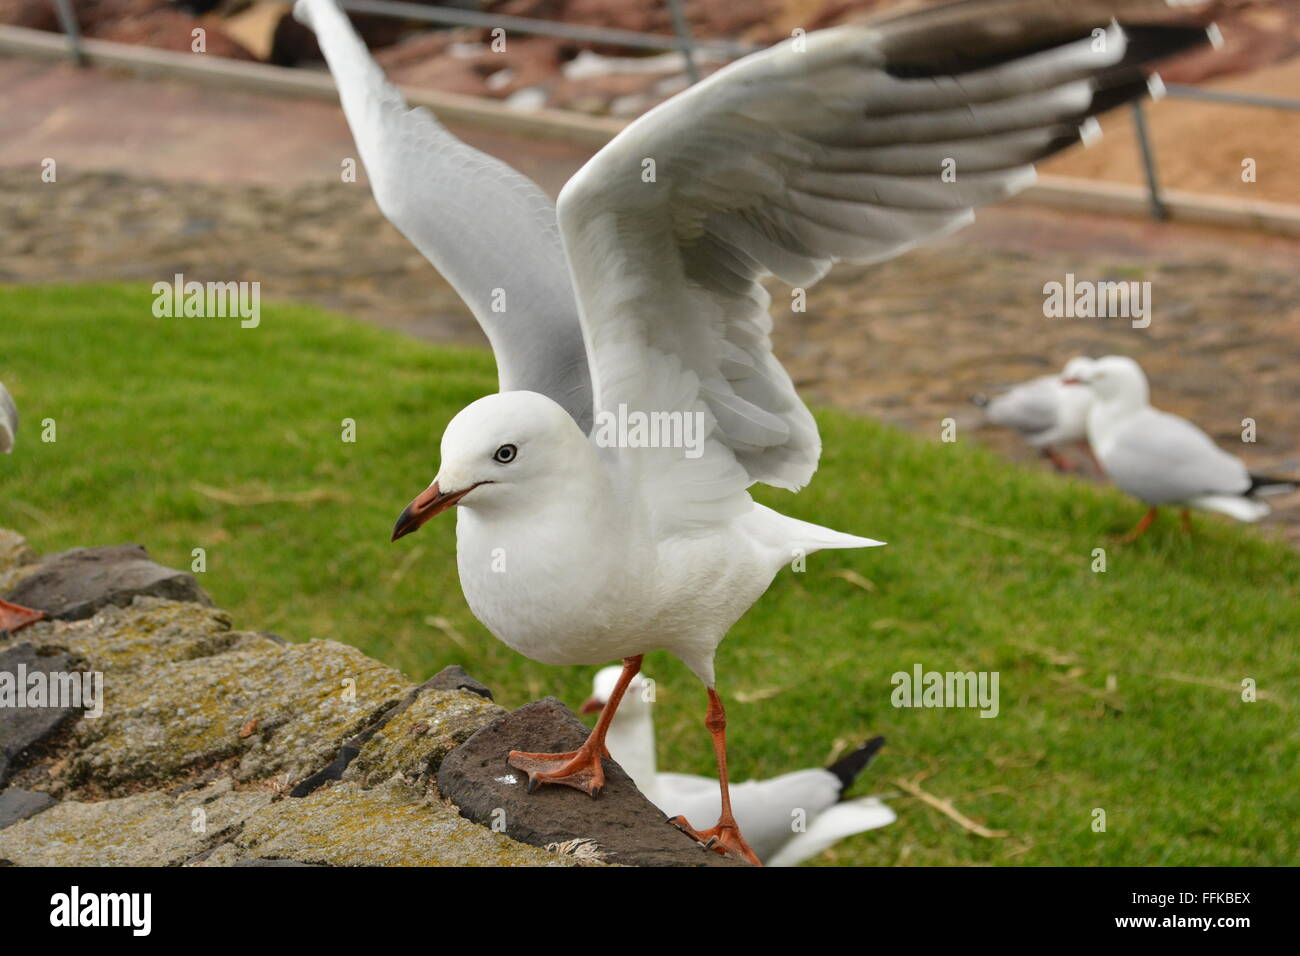 Seagull With His/Her Wings Extended - Stock Image